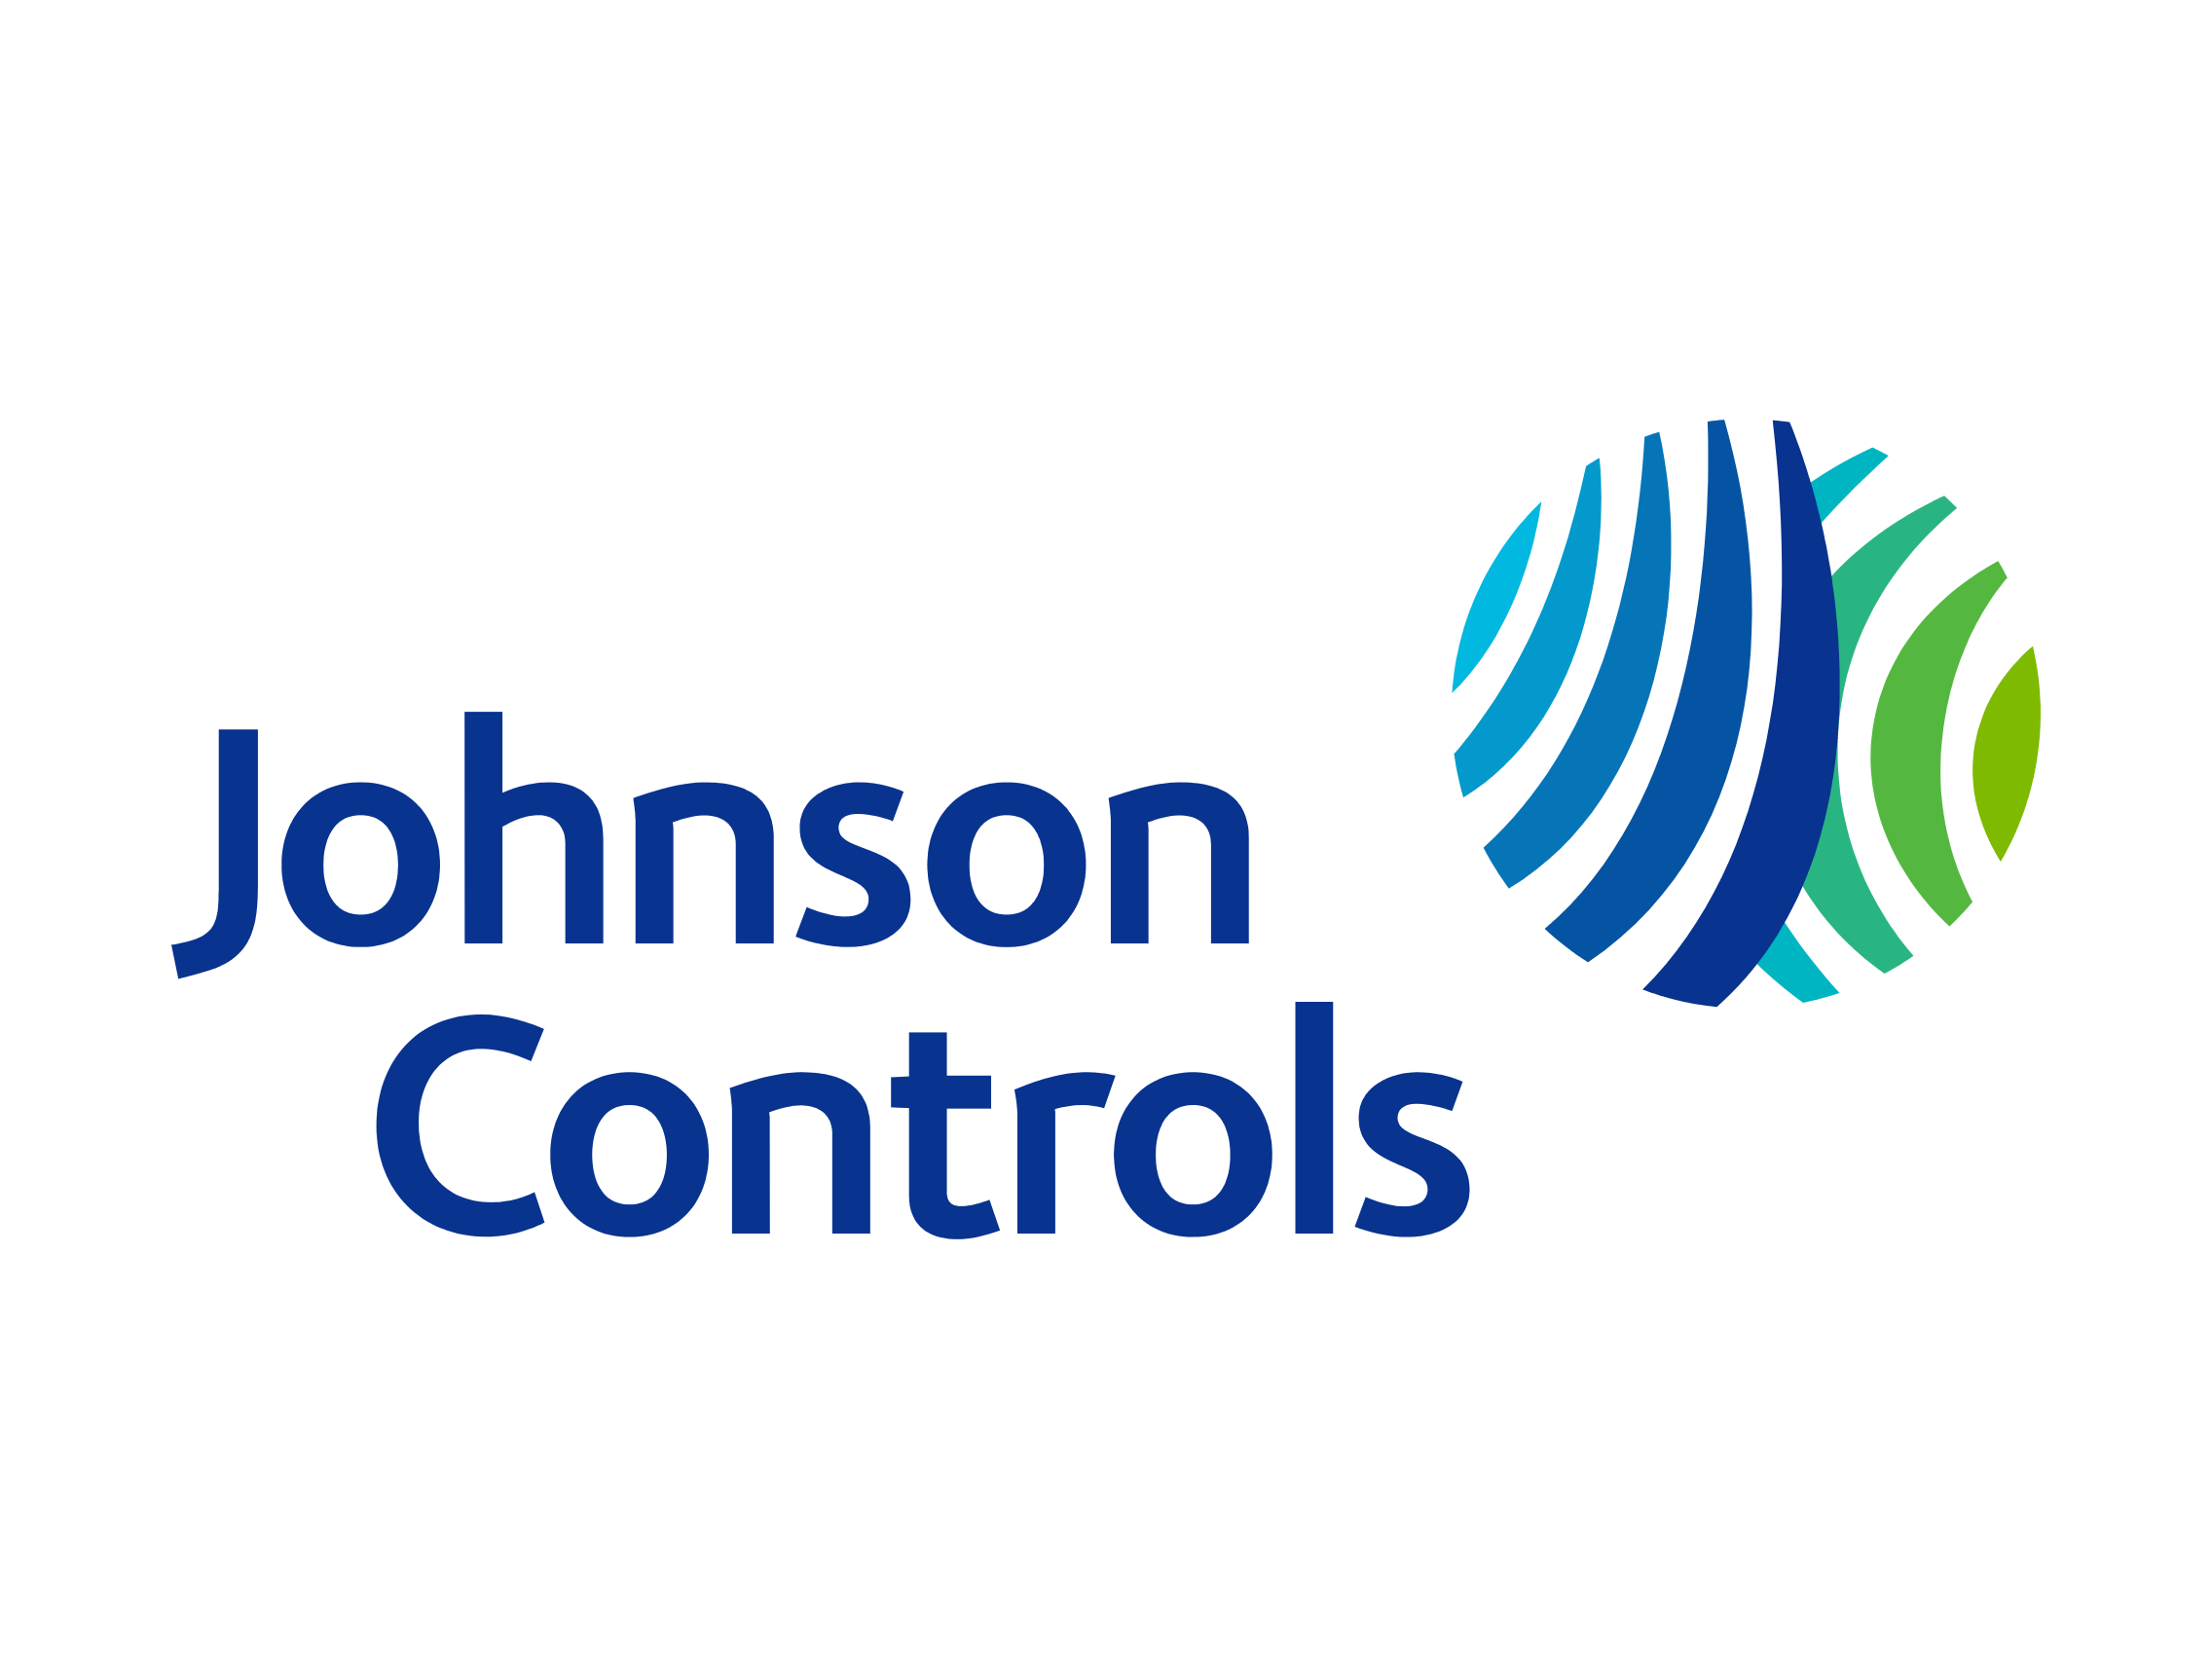 Johnson-Controls-logo-logotype